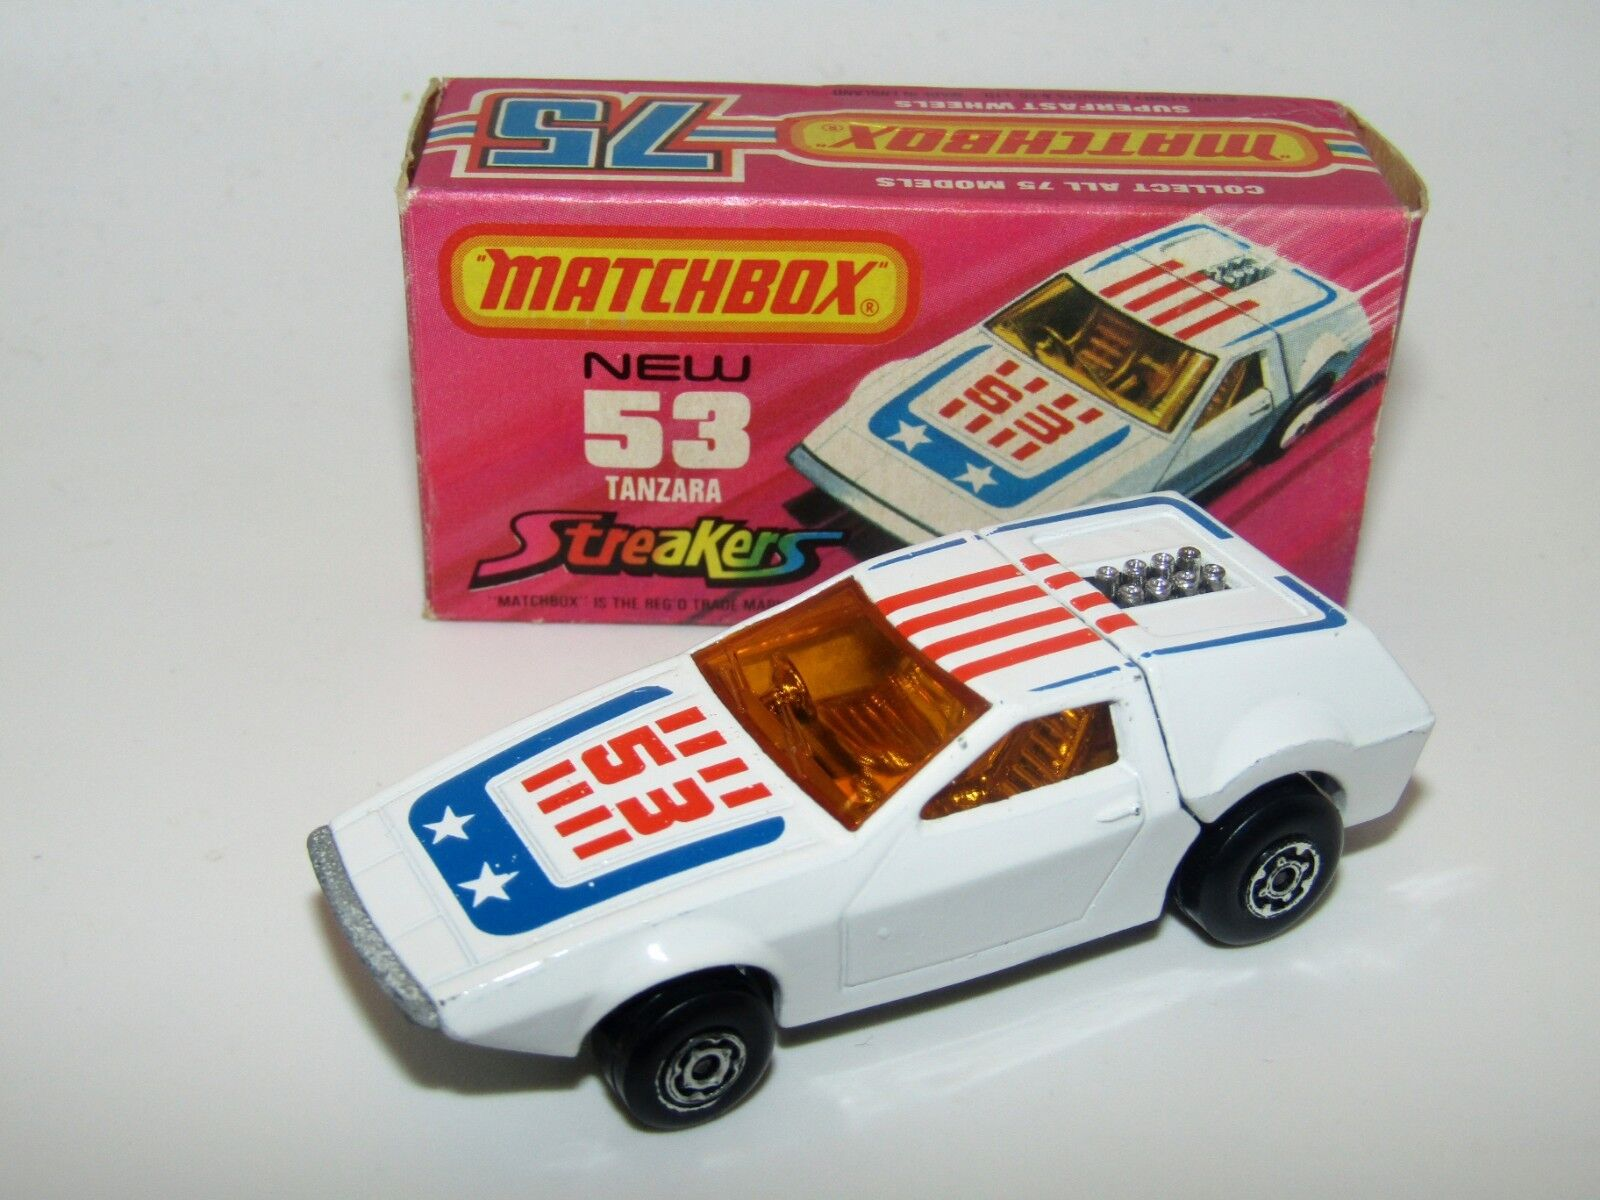 MATCHBOX SUPERFAST nº 53 Tanzara streakers Orange tampo NMIB très rare